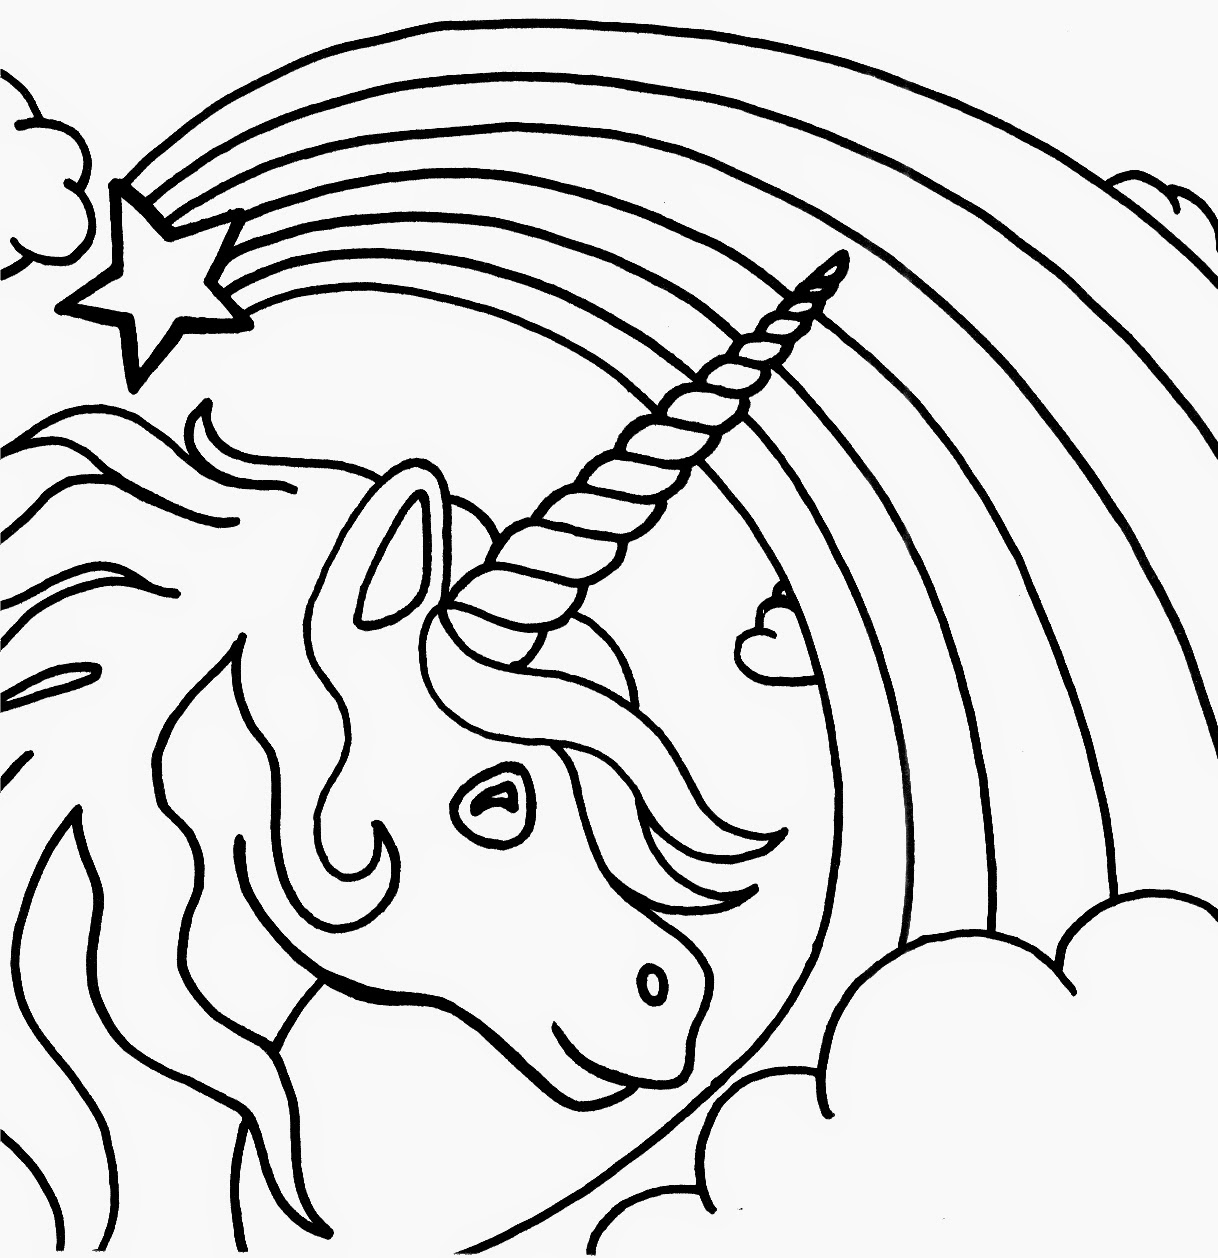 a unicorn coloring sheet unicorn coloring in page printable free kids coloring coloring unicorn a sheet